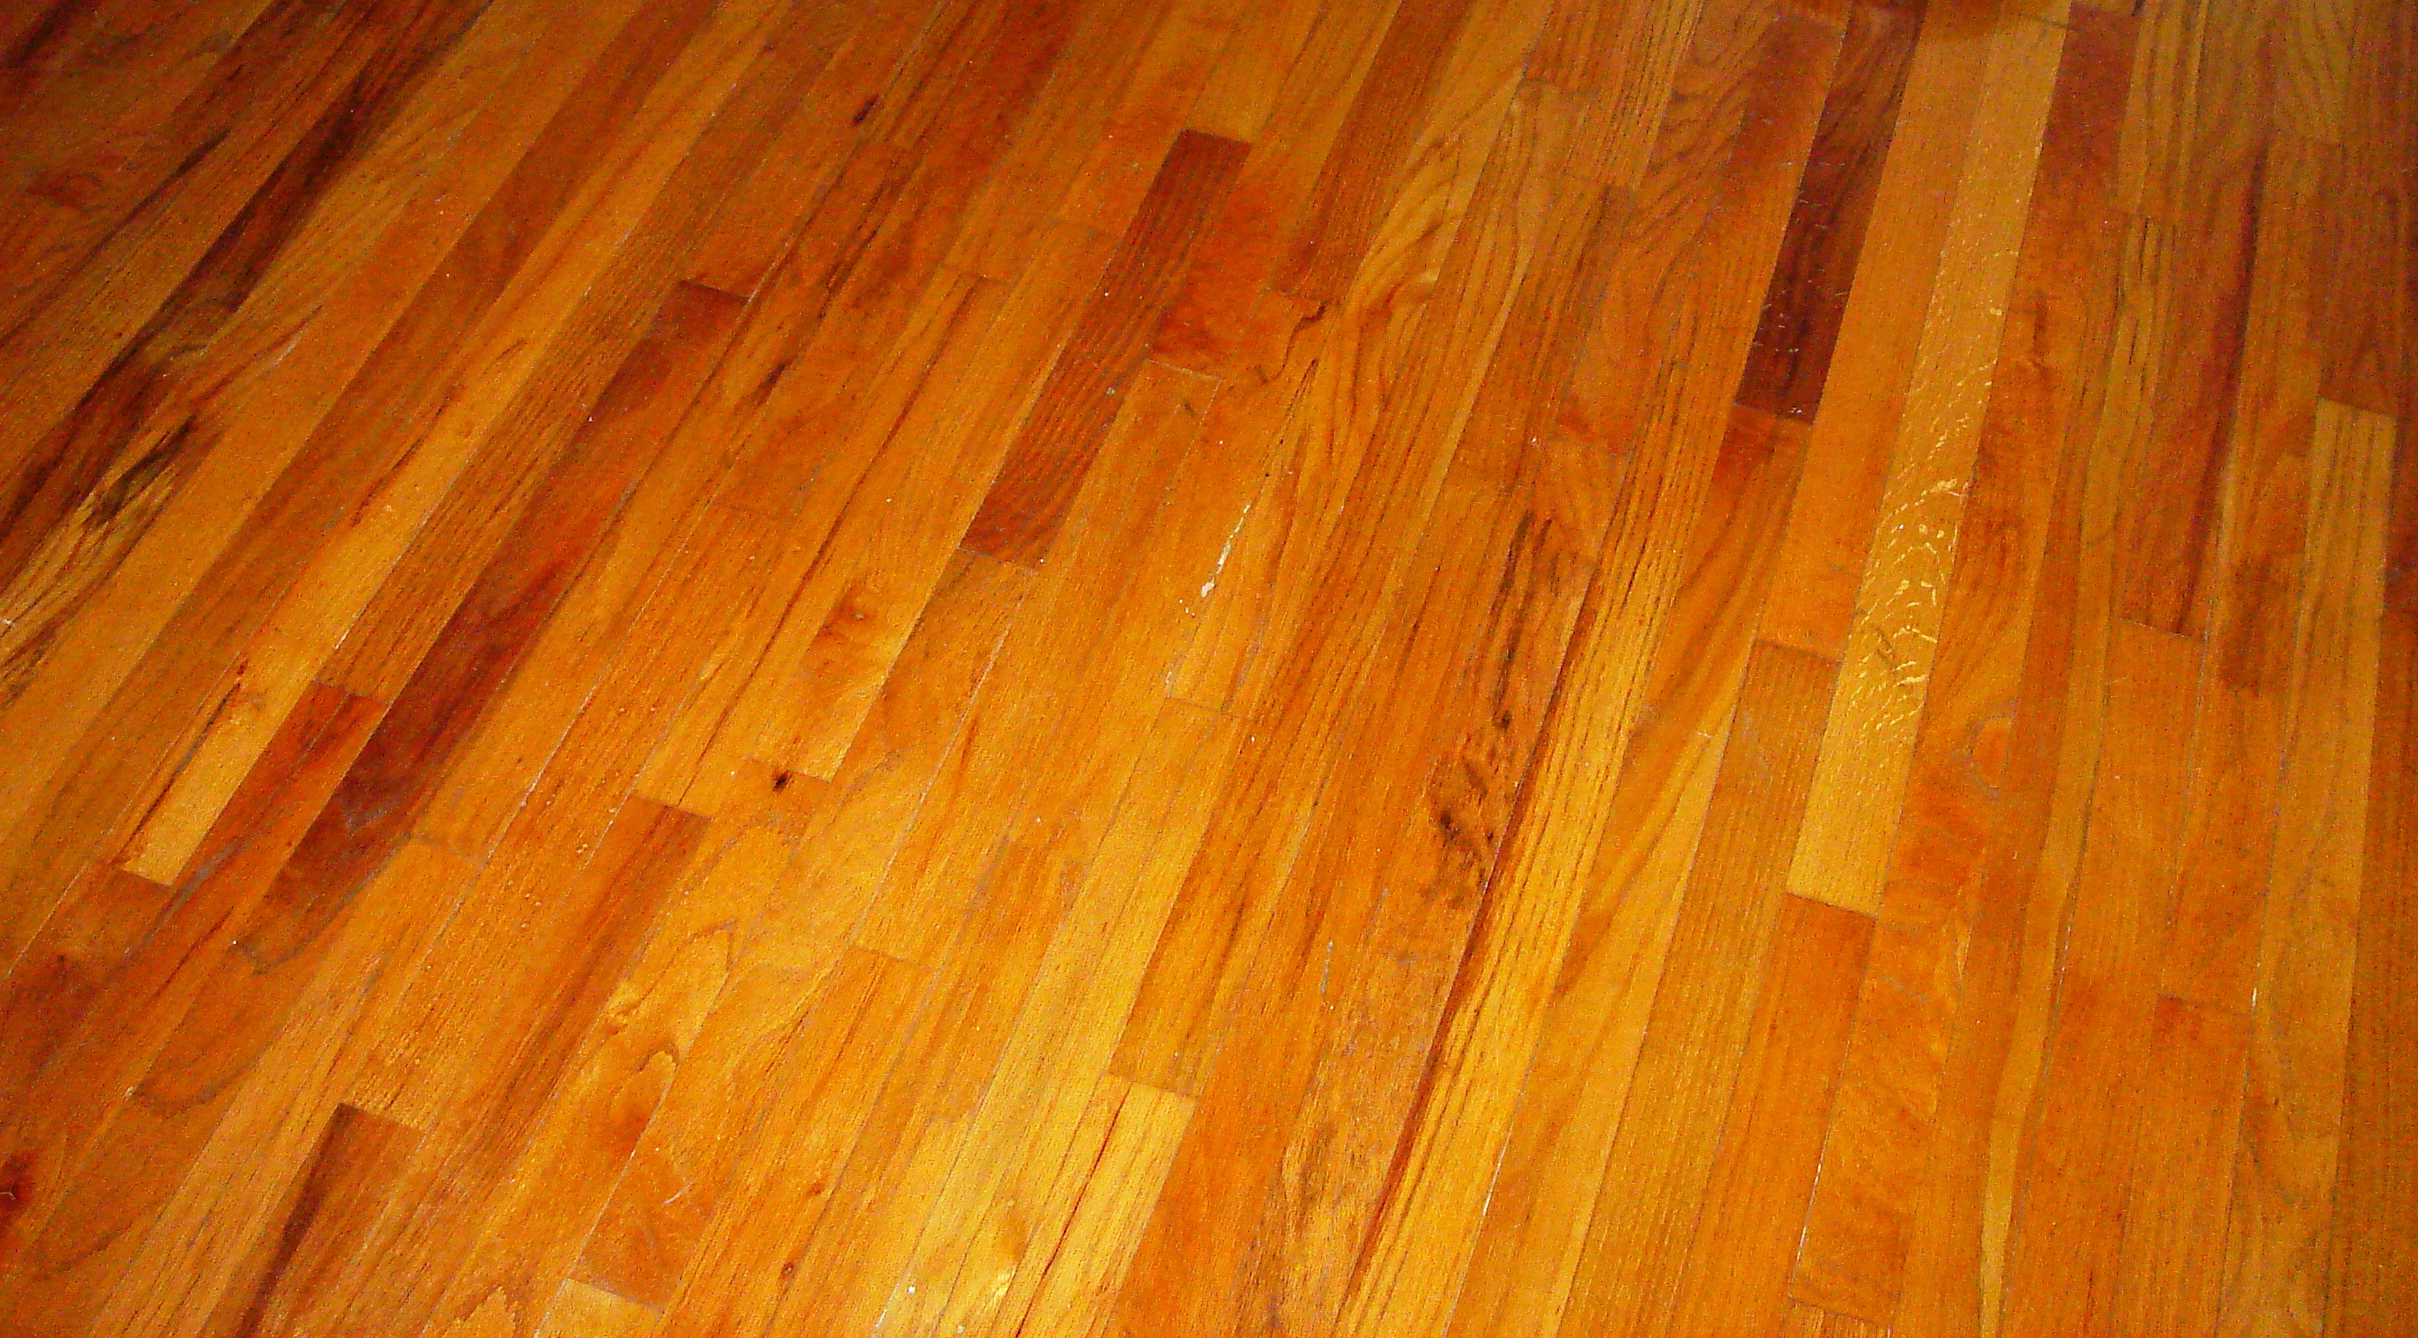 Spruce Up Wood Flooringremodel your home with wood floors spruce it up